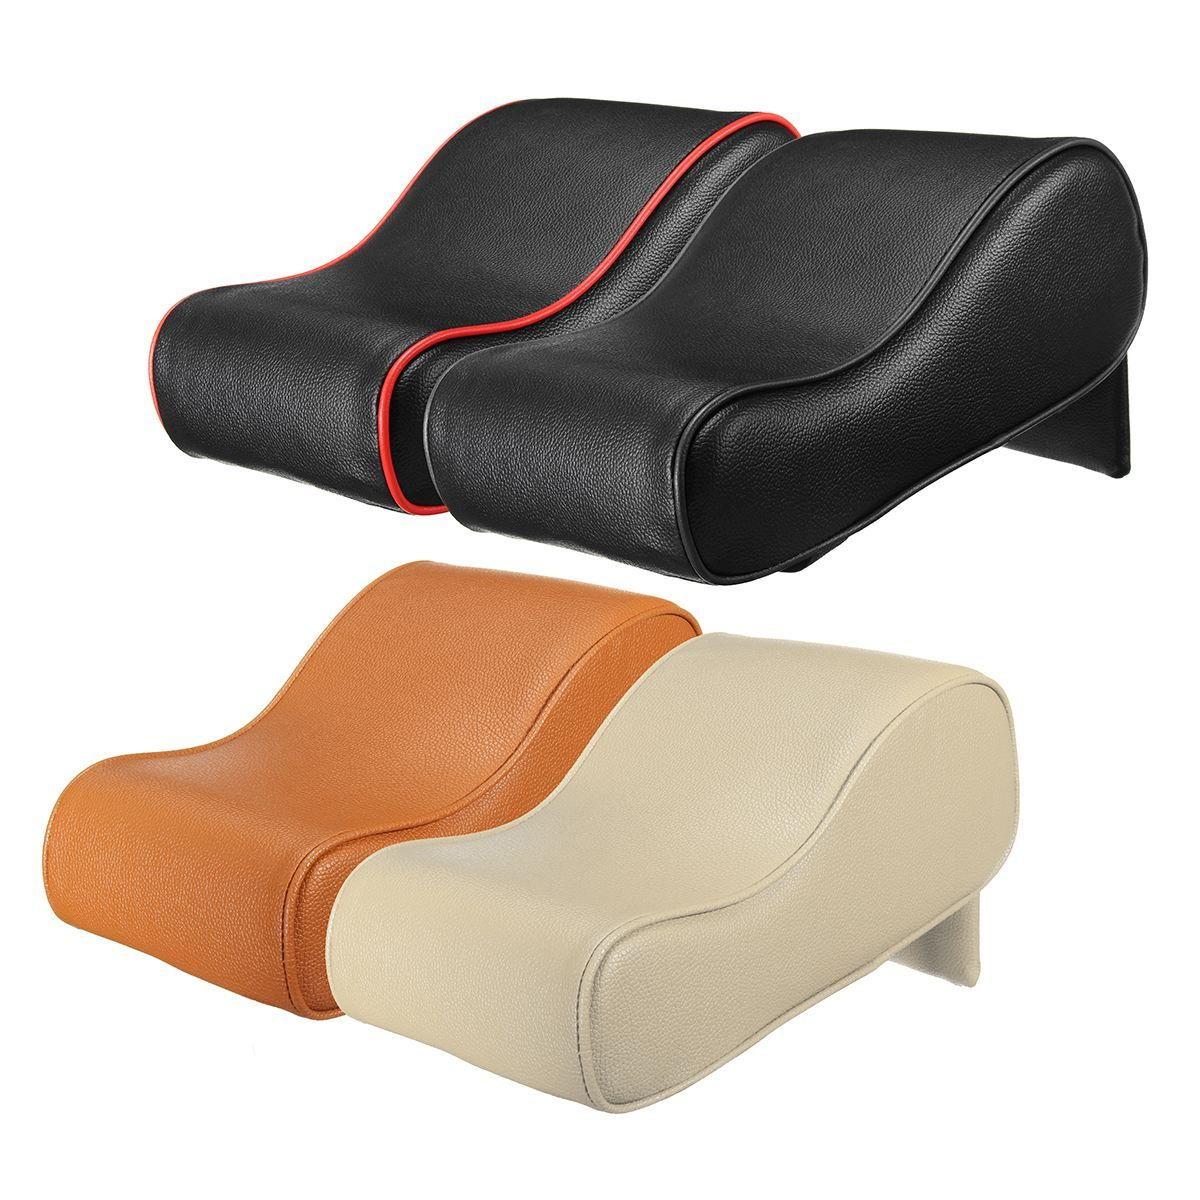 PU Leather Car SUV Center Box Armrest Cushion Console Soft Pad Cushion Cover Mat Memory Foam Rest Pillow Armrest Supports